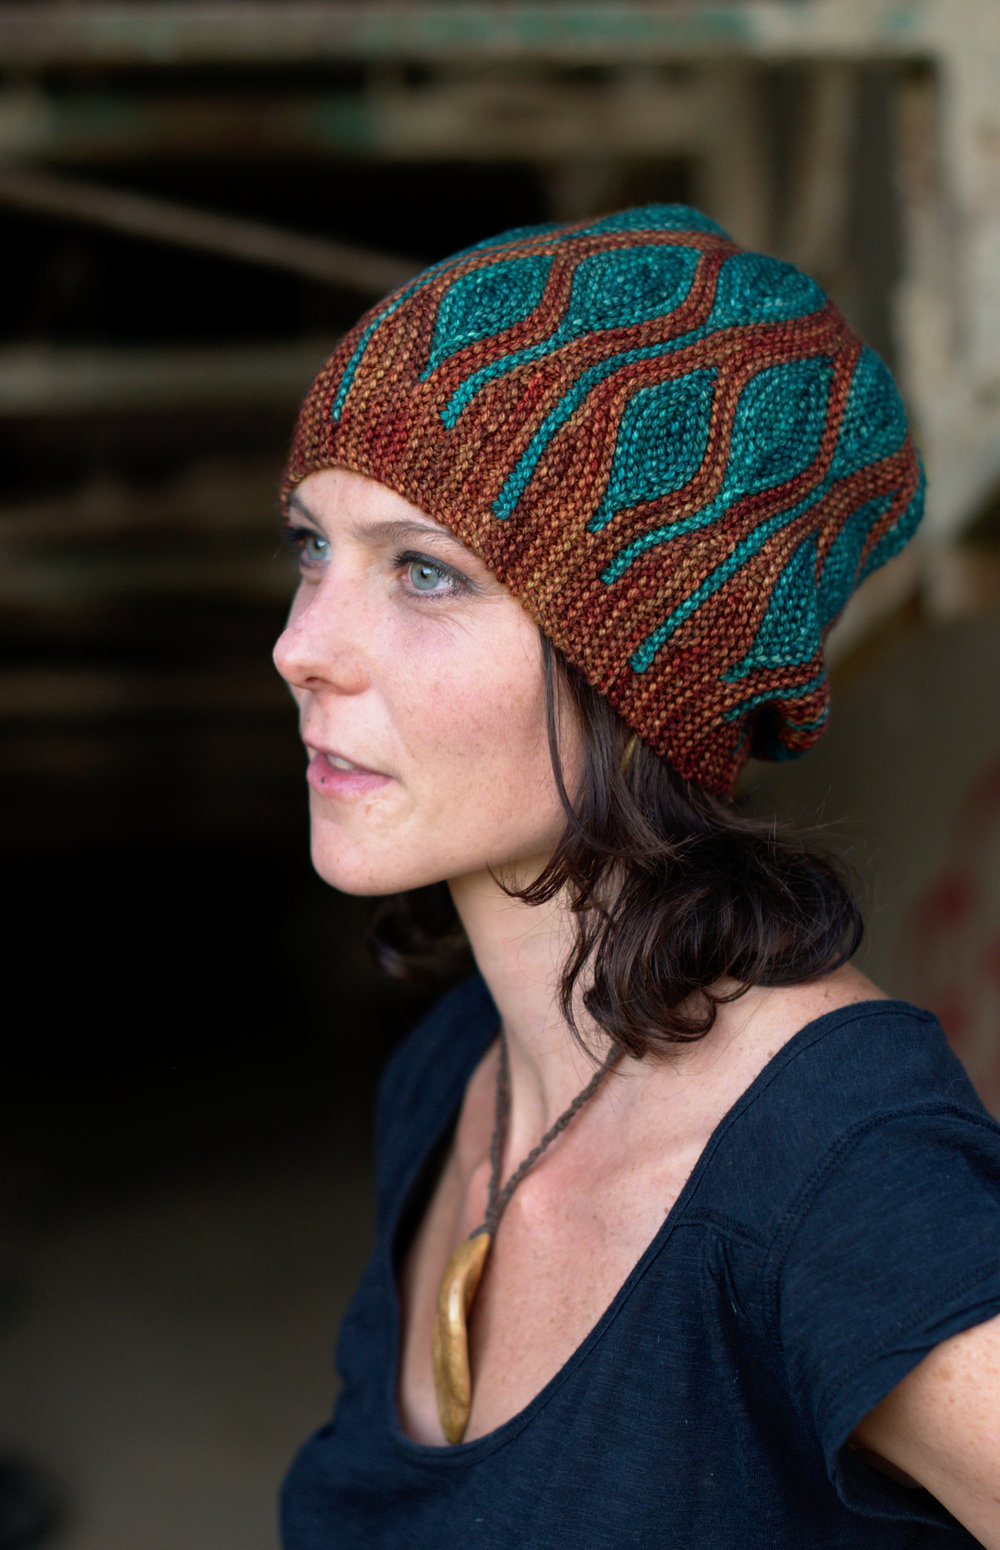 Copy of Toph sideways knit short row colourwork Hat knitting pattern